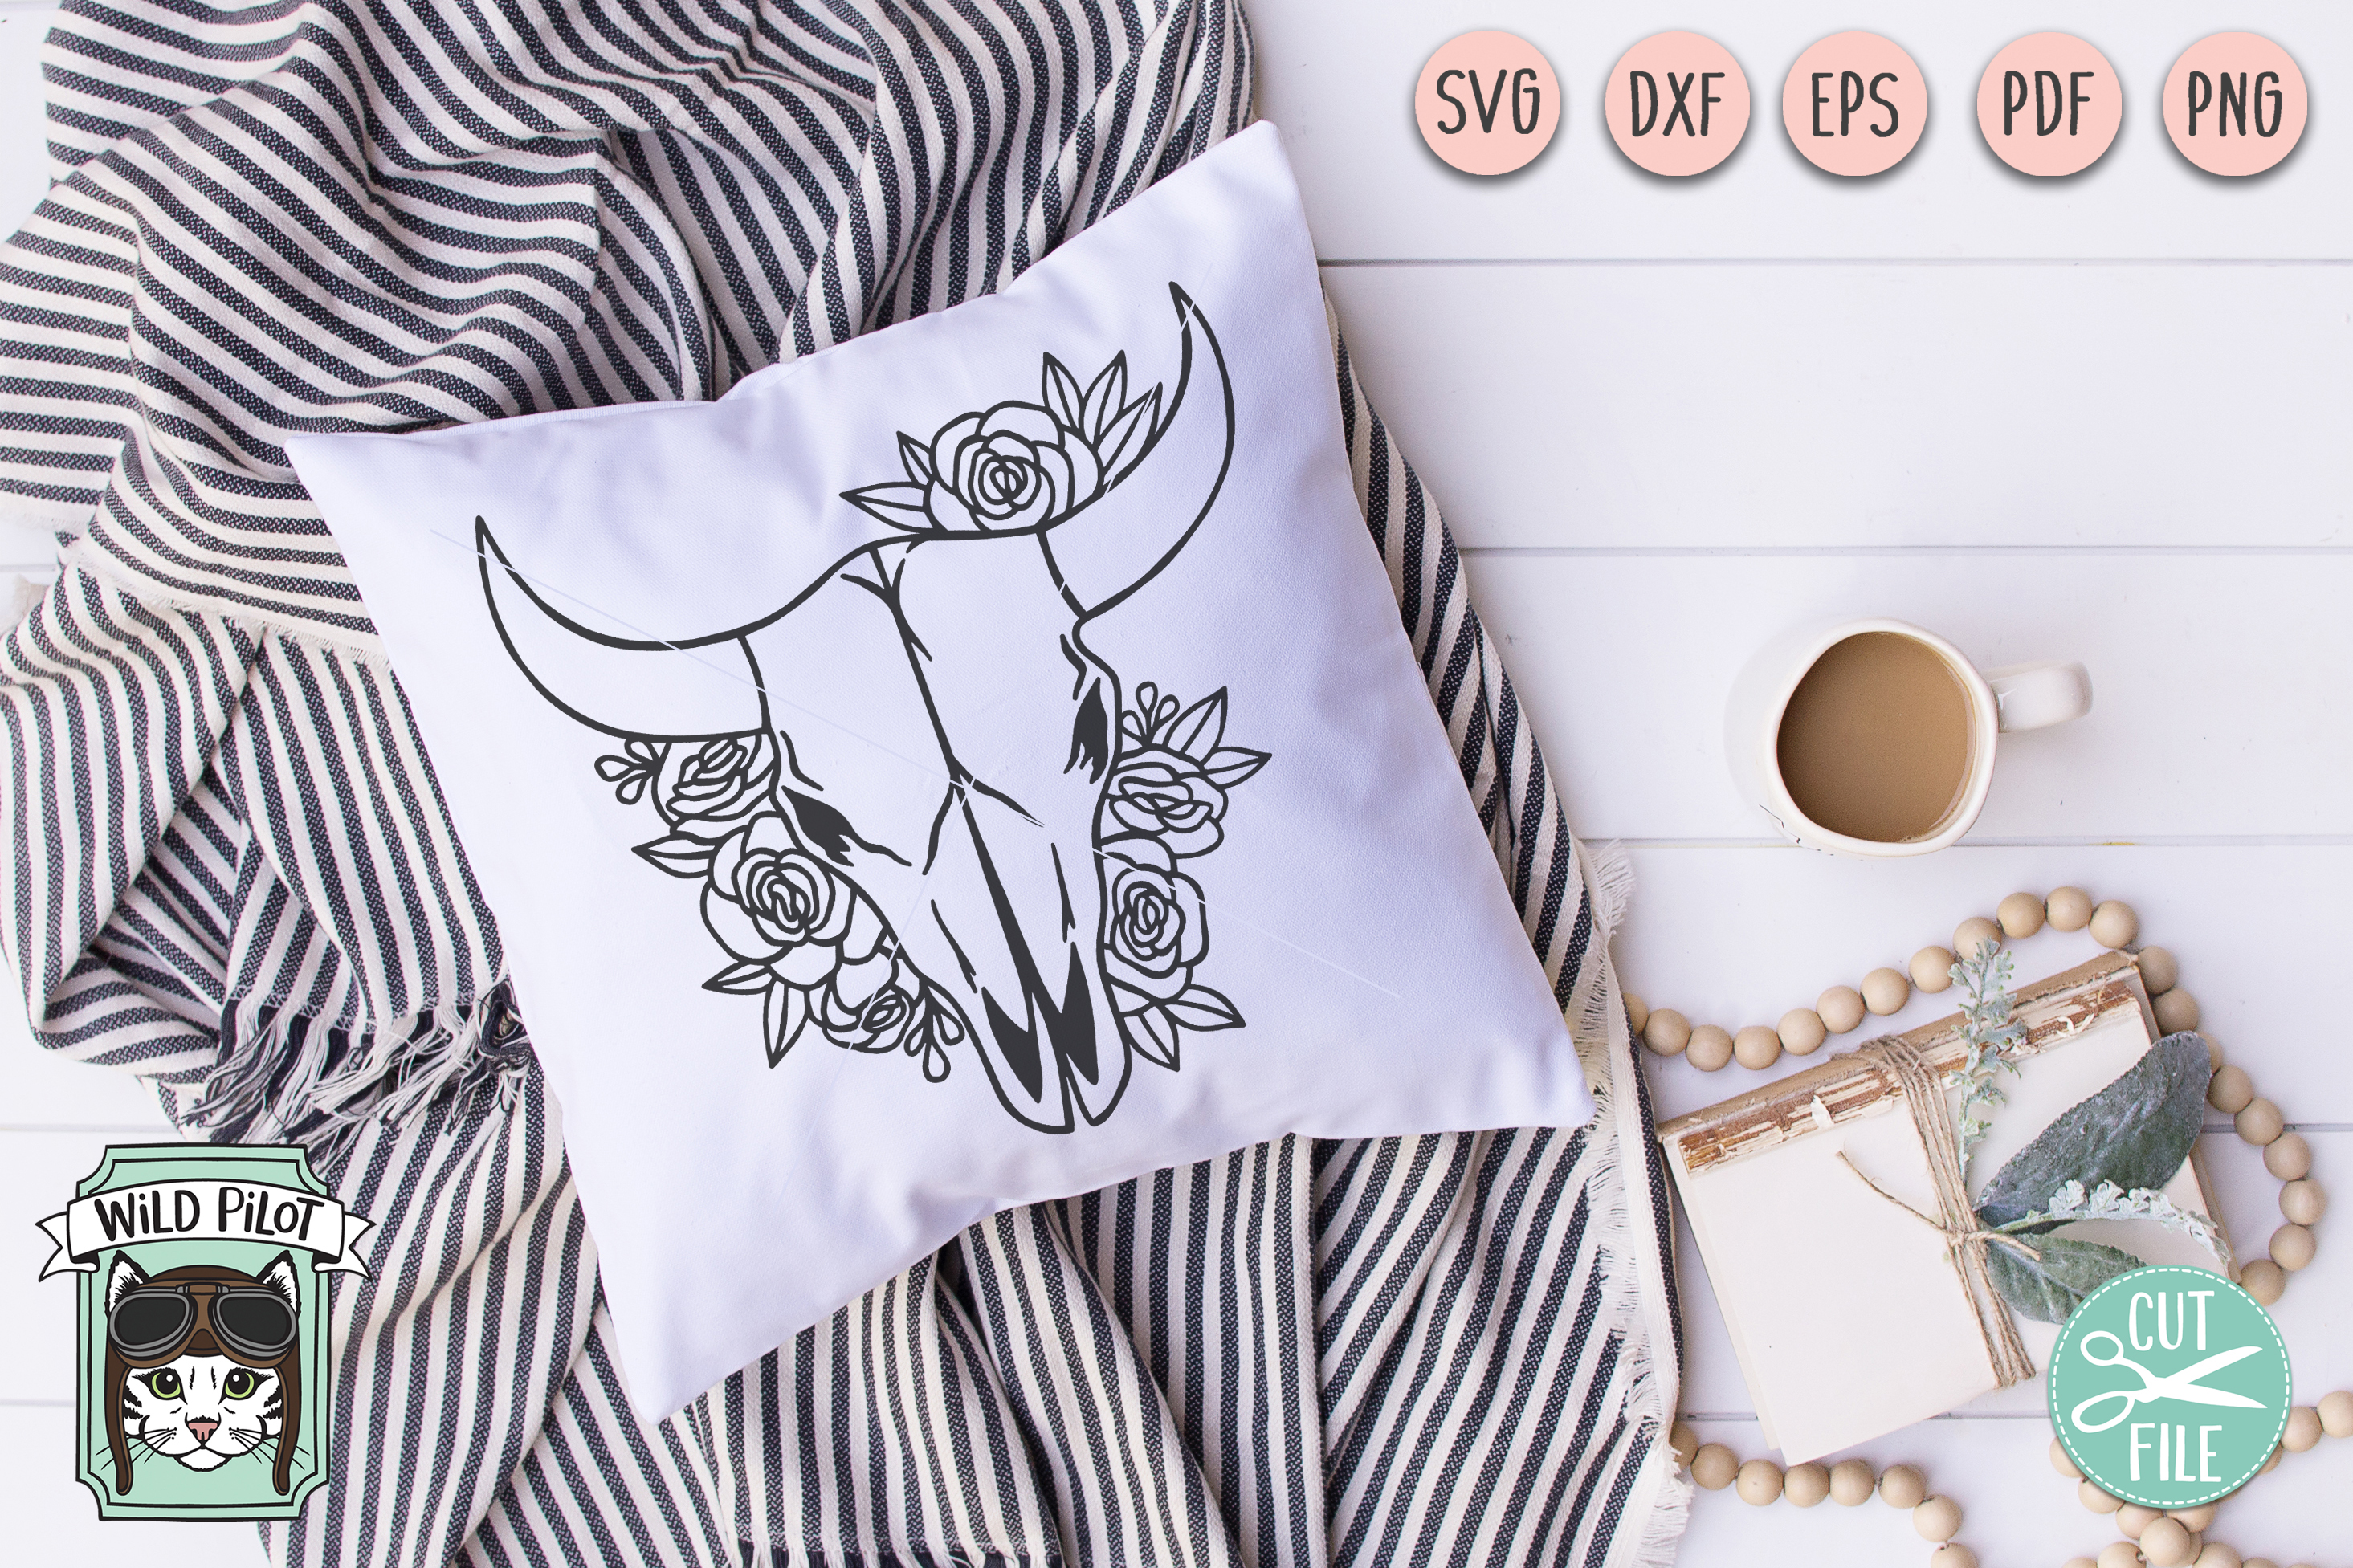 Cow Skull svg file, Cow Skull cut file, Cow Skull Flowers example image 3